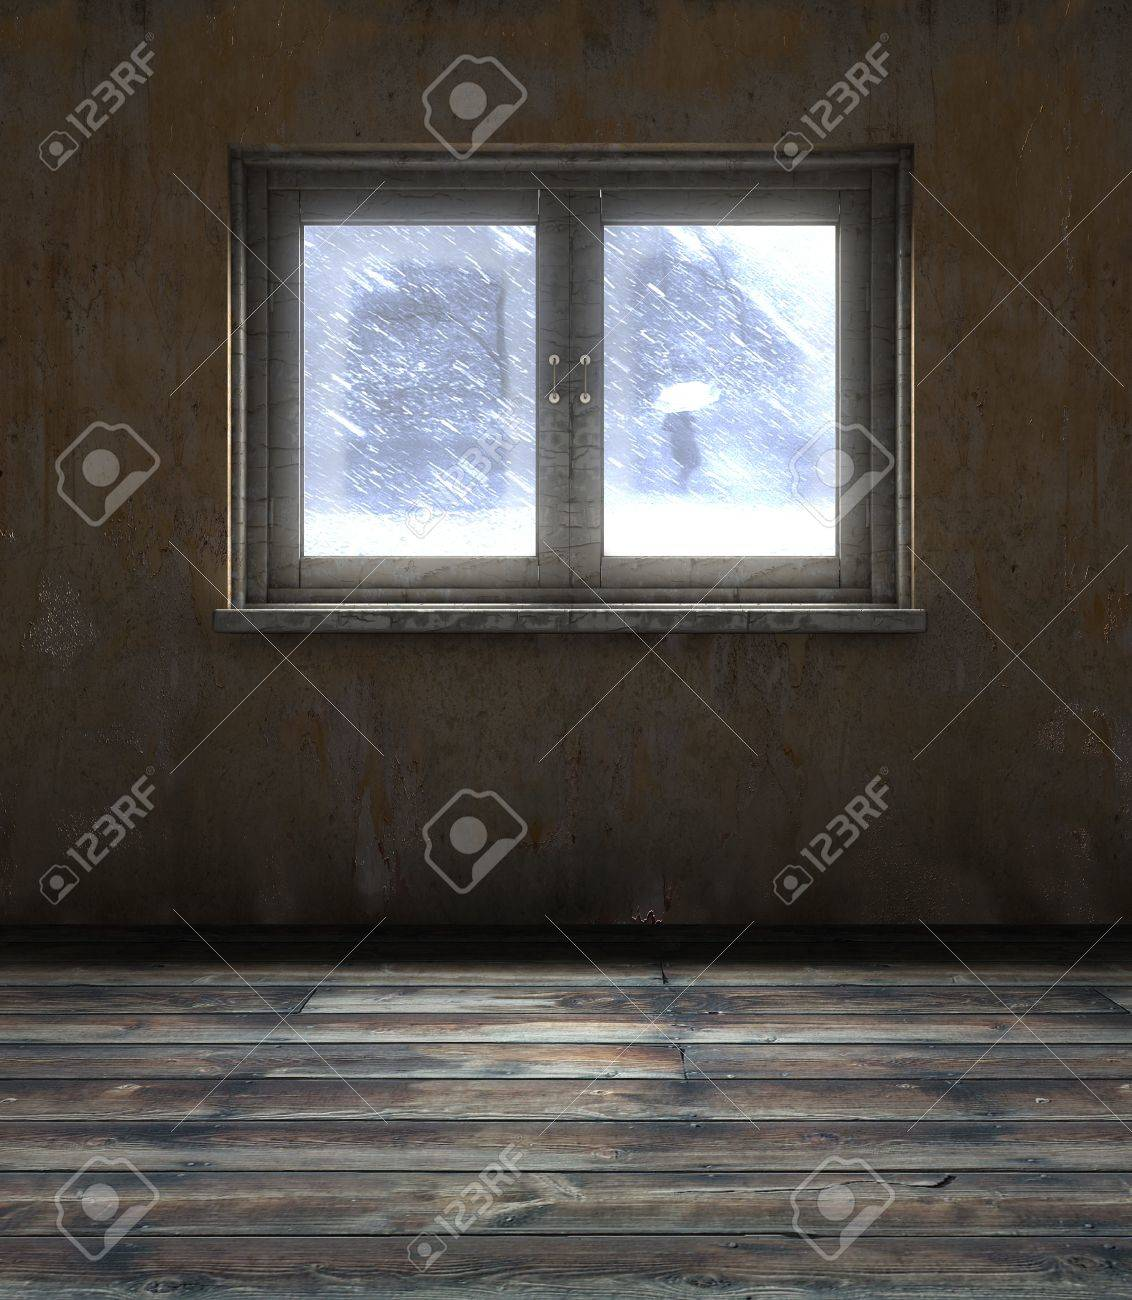 abstract 3d illustration of old room window Stock Photo - 9351421